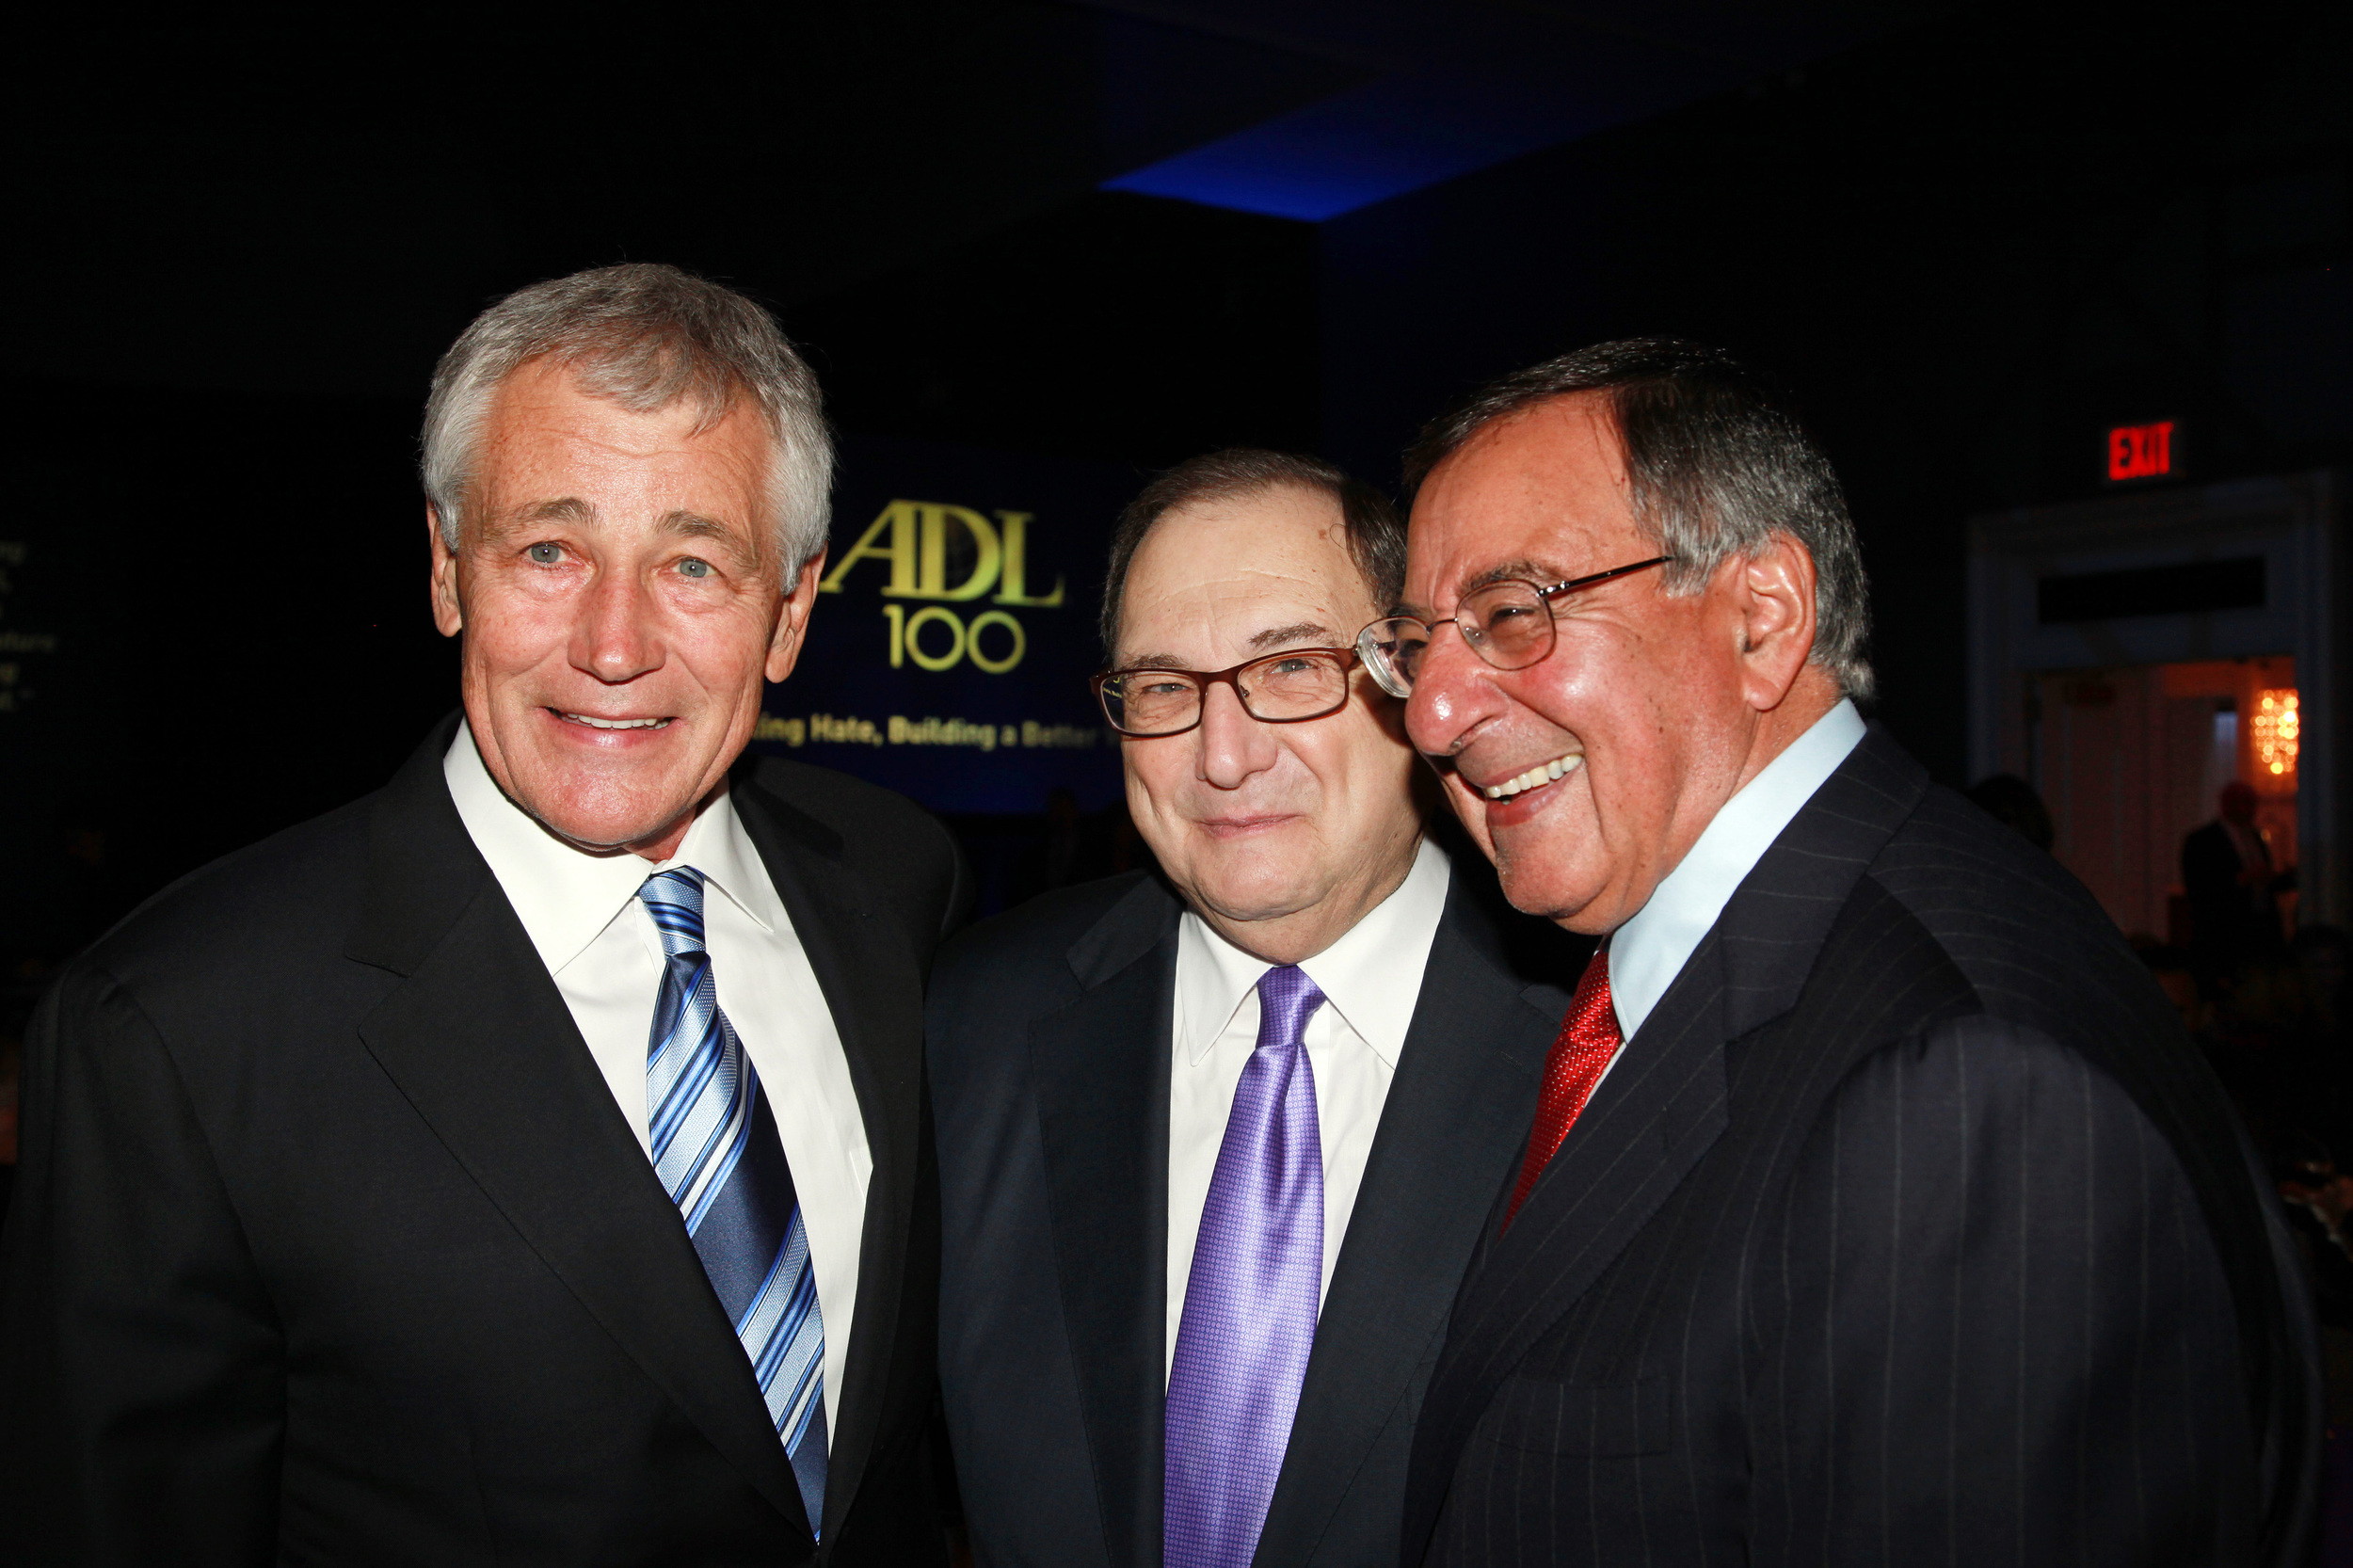 Click photo to download. Caption: From left to right: Chuck Hagel, U.S. Secretary of Defense; Abraham H. Foxman, National Director of the Anti-Defamation League; and Leon Panetta, former CIA Director and Defense Secretary, pictured at a recent Anti-Defamation League dinner honoring Panetta. Credit: David Karp.